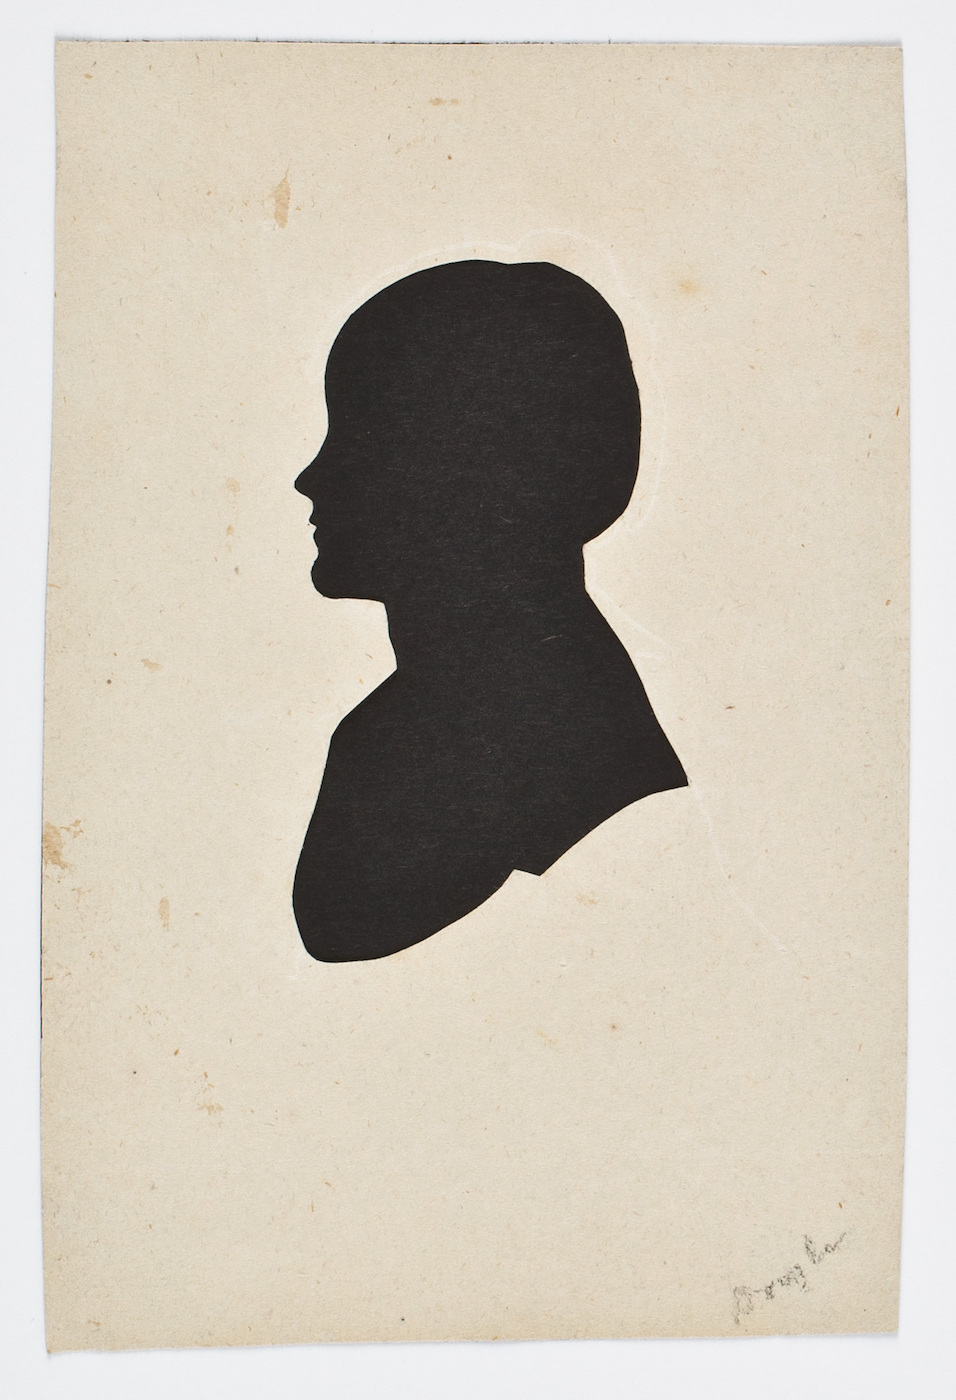 Silhouette of an unknown woman by William M. S. Doyle (before 1828) (courtesy American Antiquarian Society)